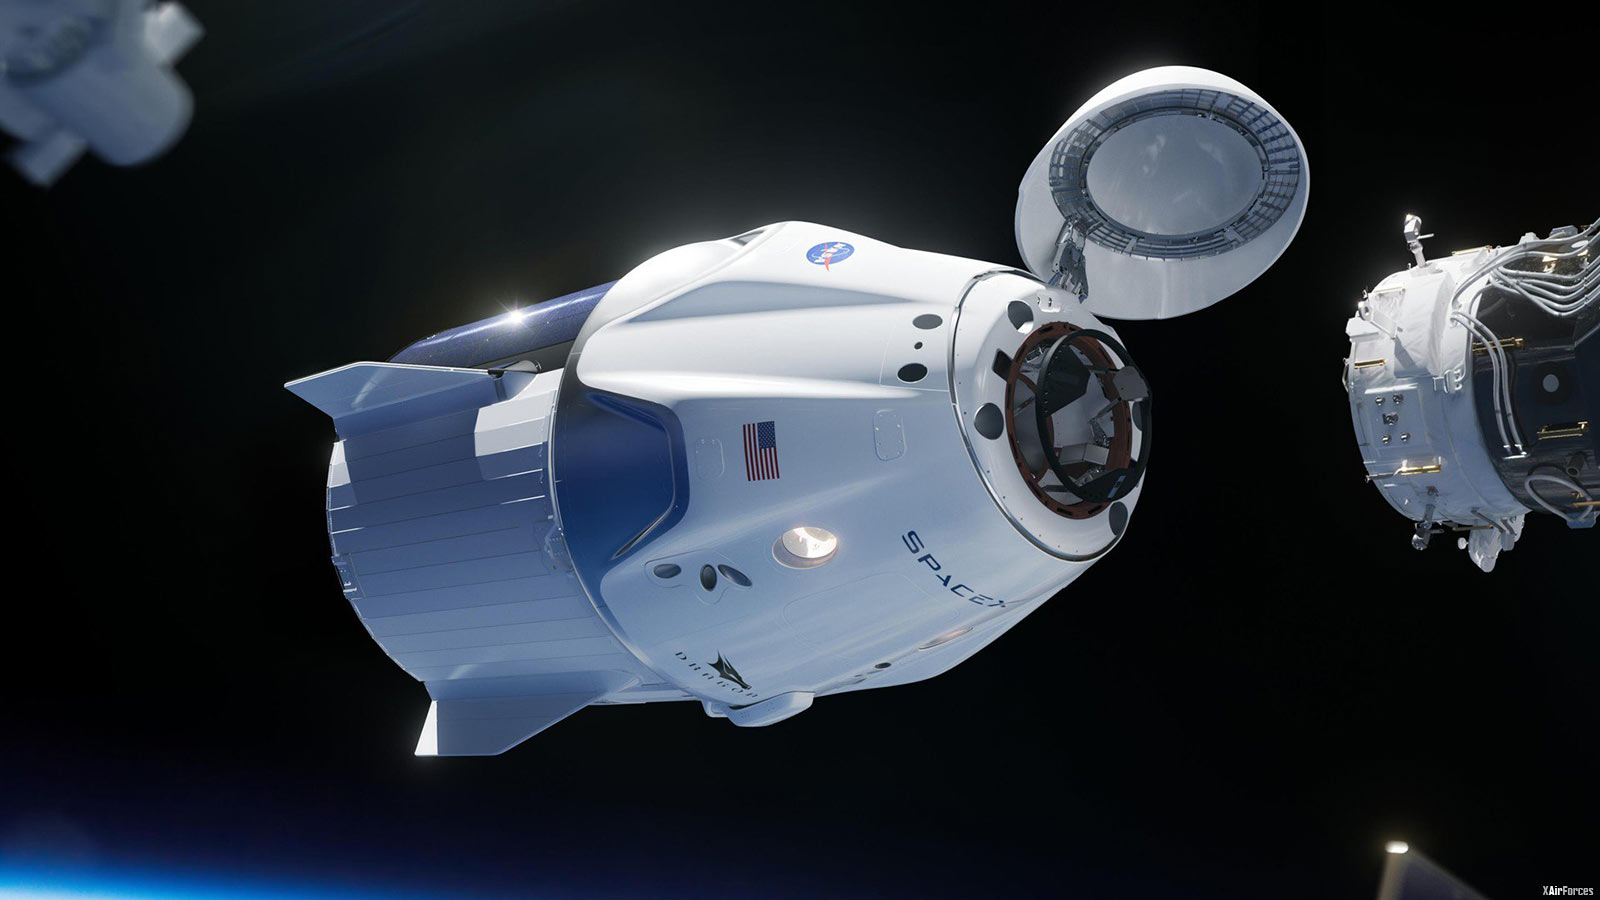 NASA International Space Station (ISS) with Dragon 2 spacecraft